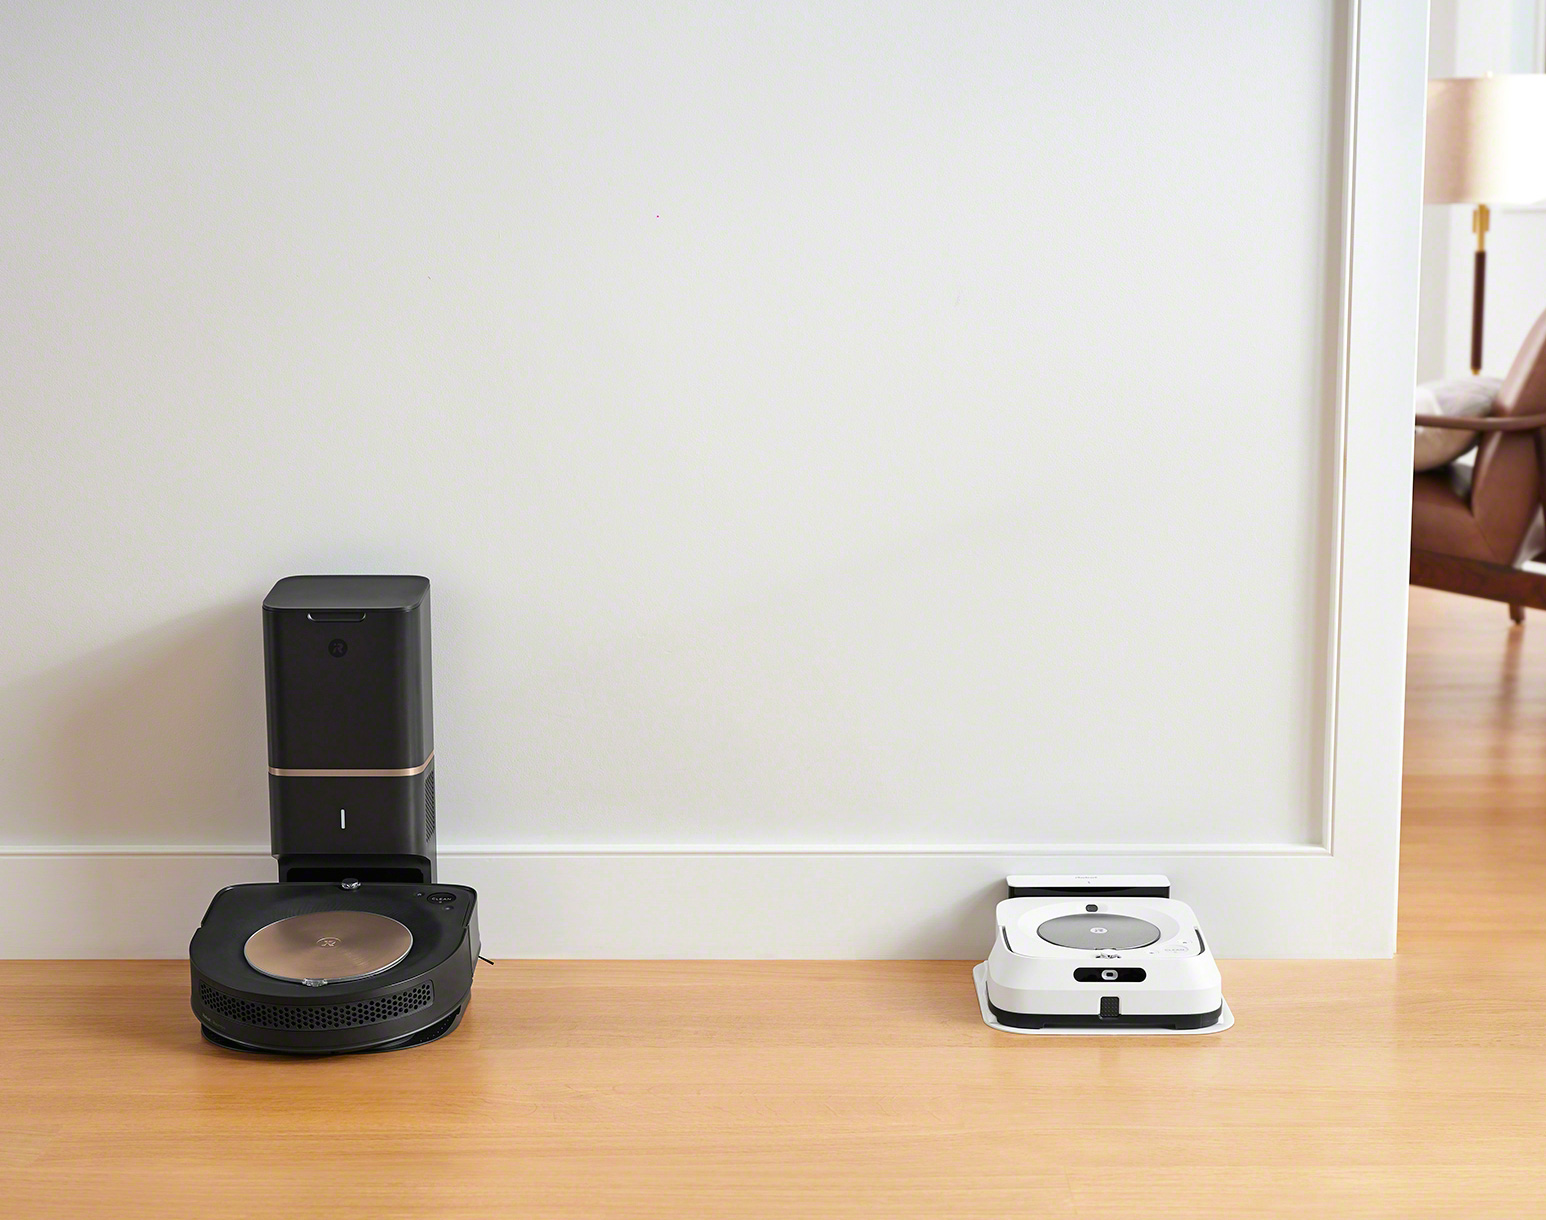 iRobot Keeps Making It Easier To Keep Your Crib Clean at werd.com